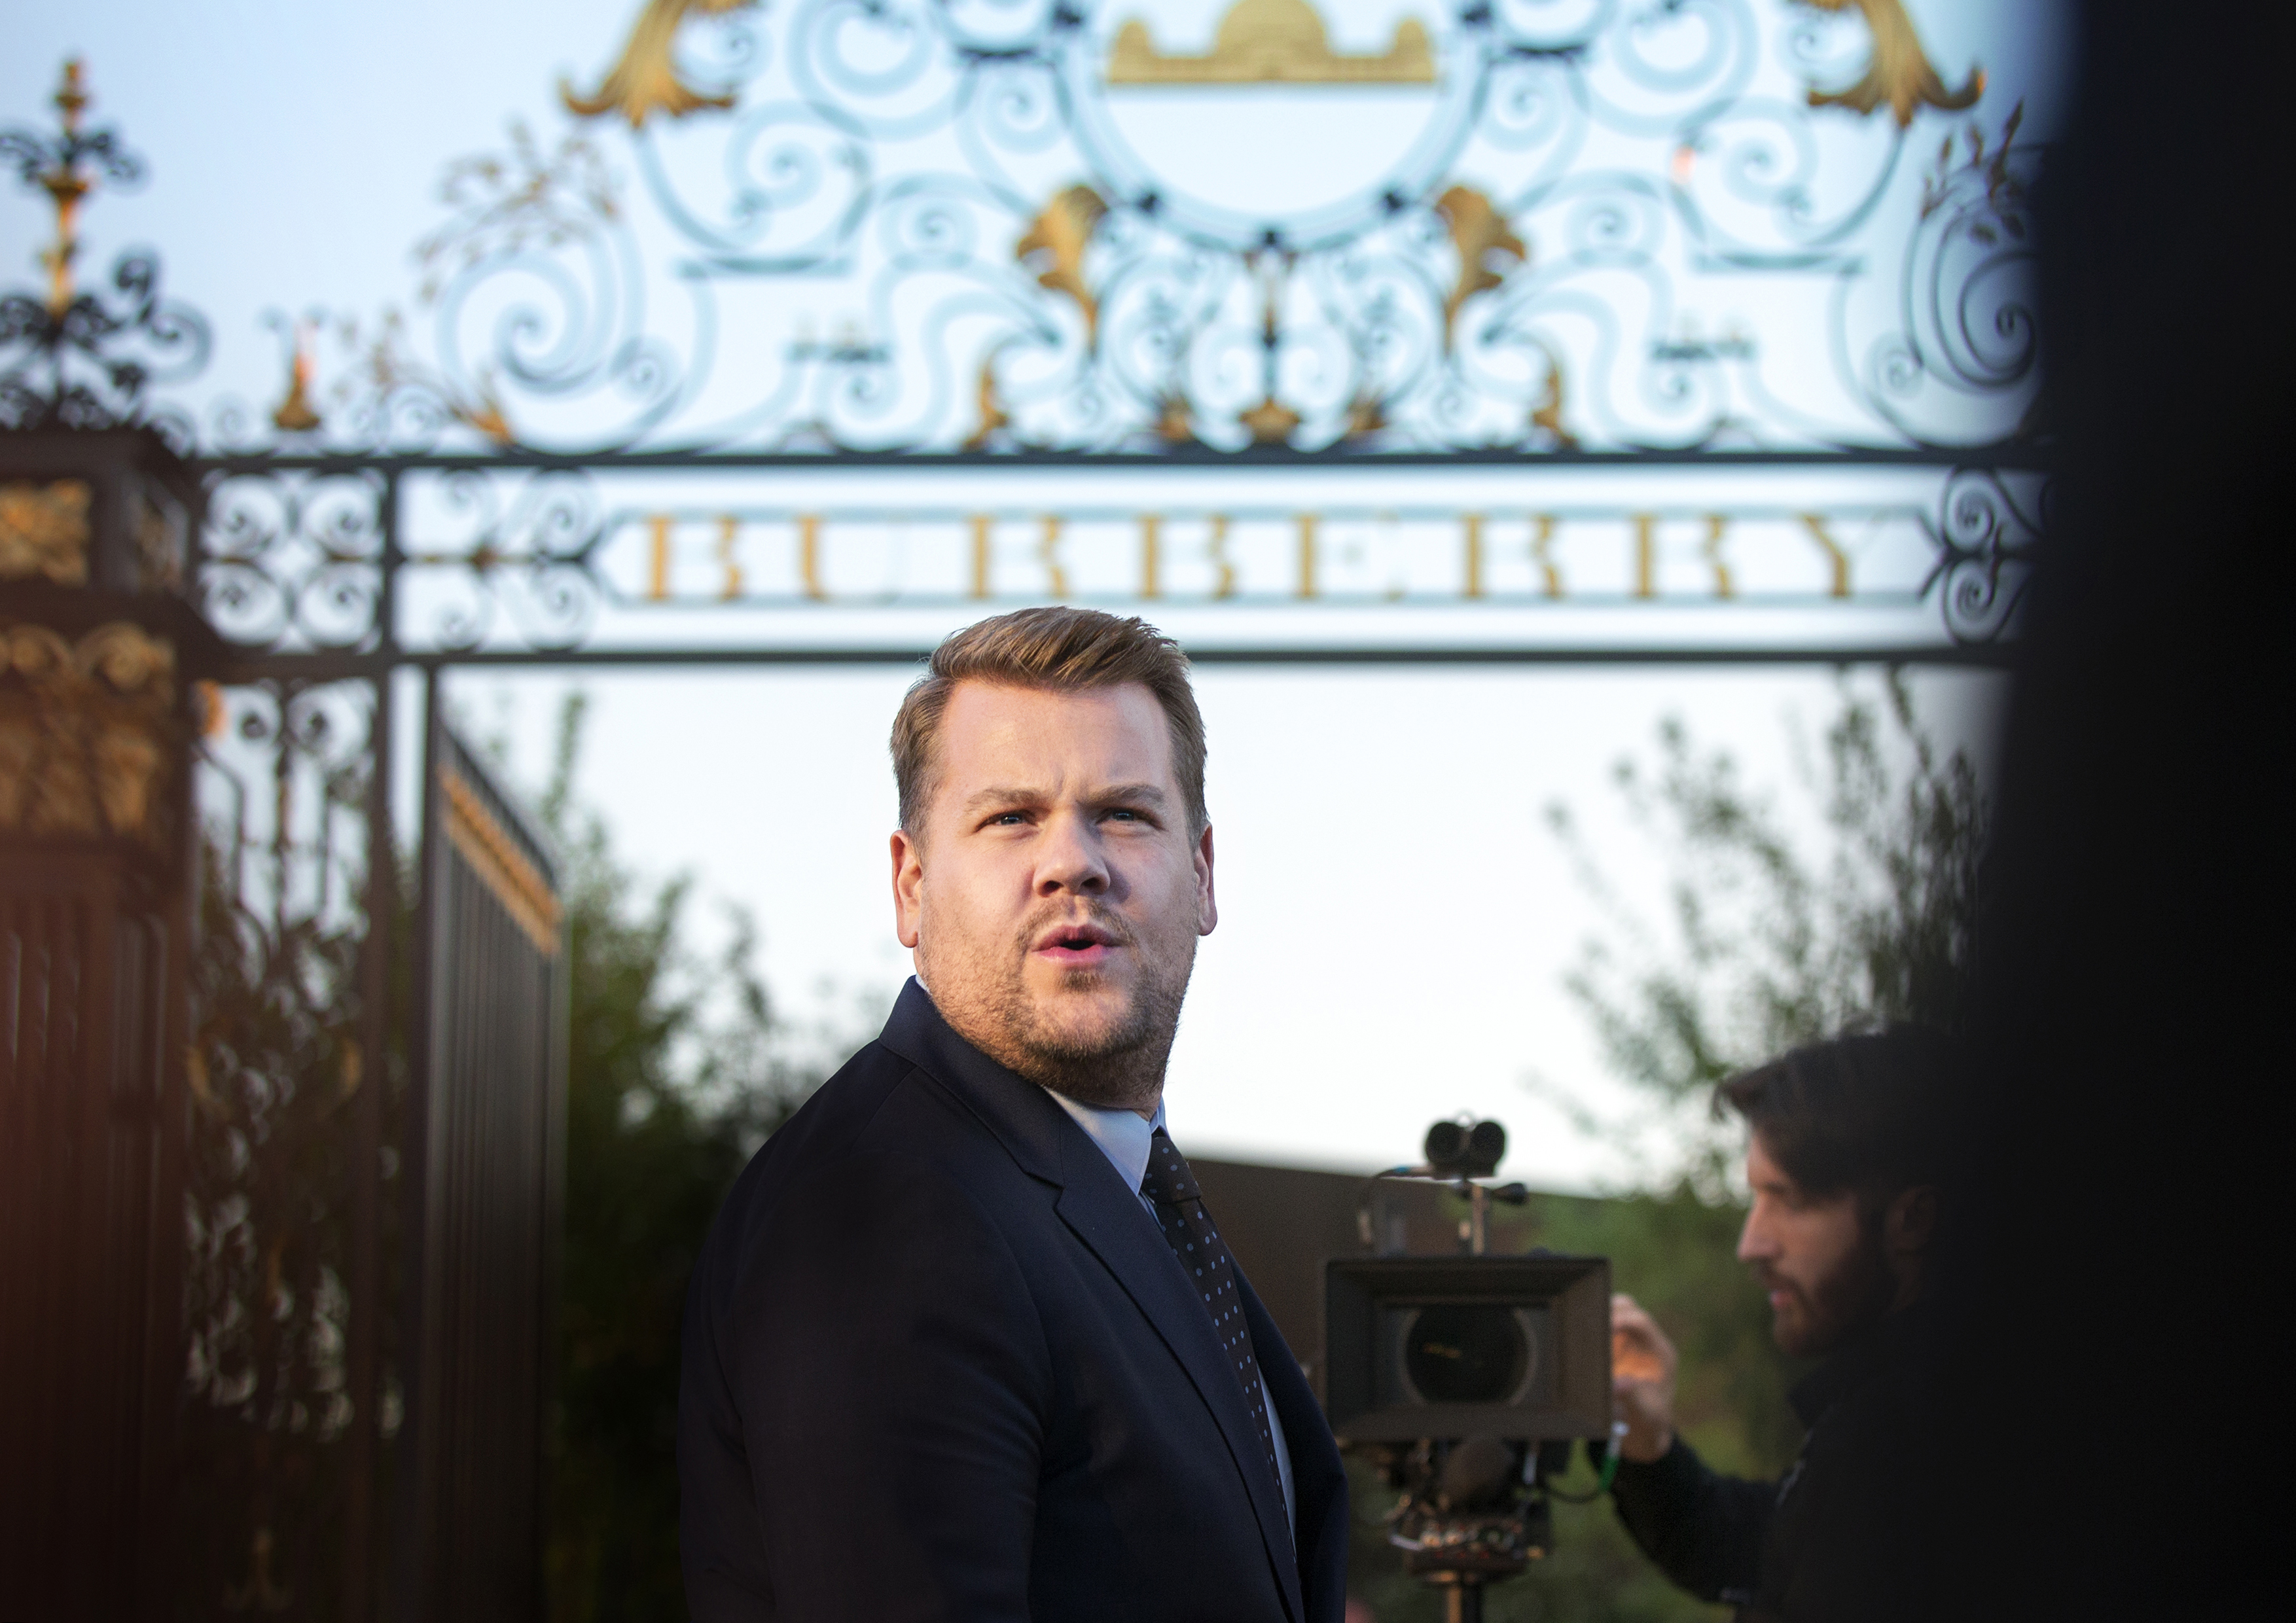 James Corden arrives outside the Burberry pearly gates.